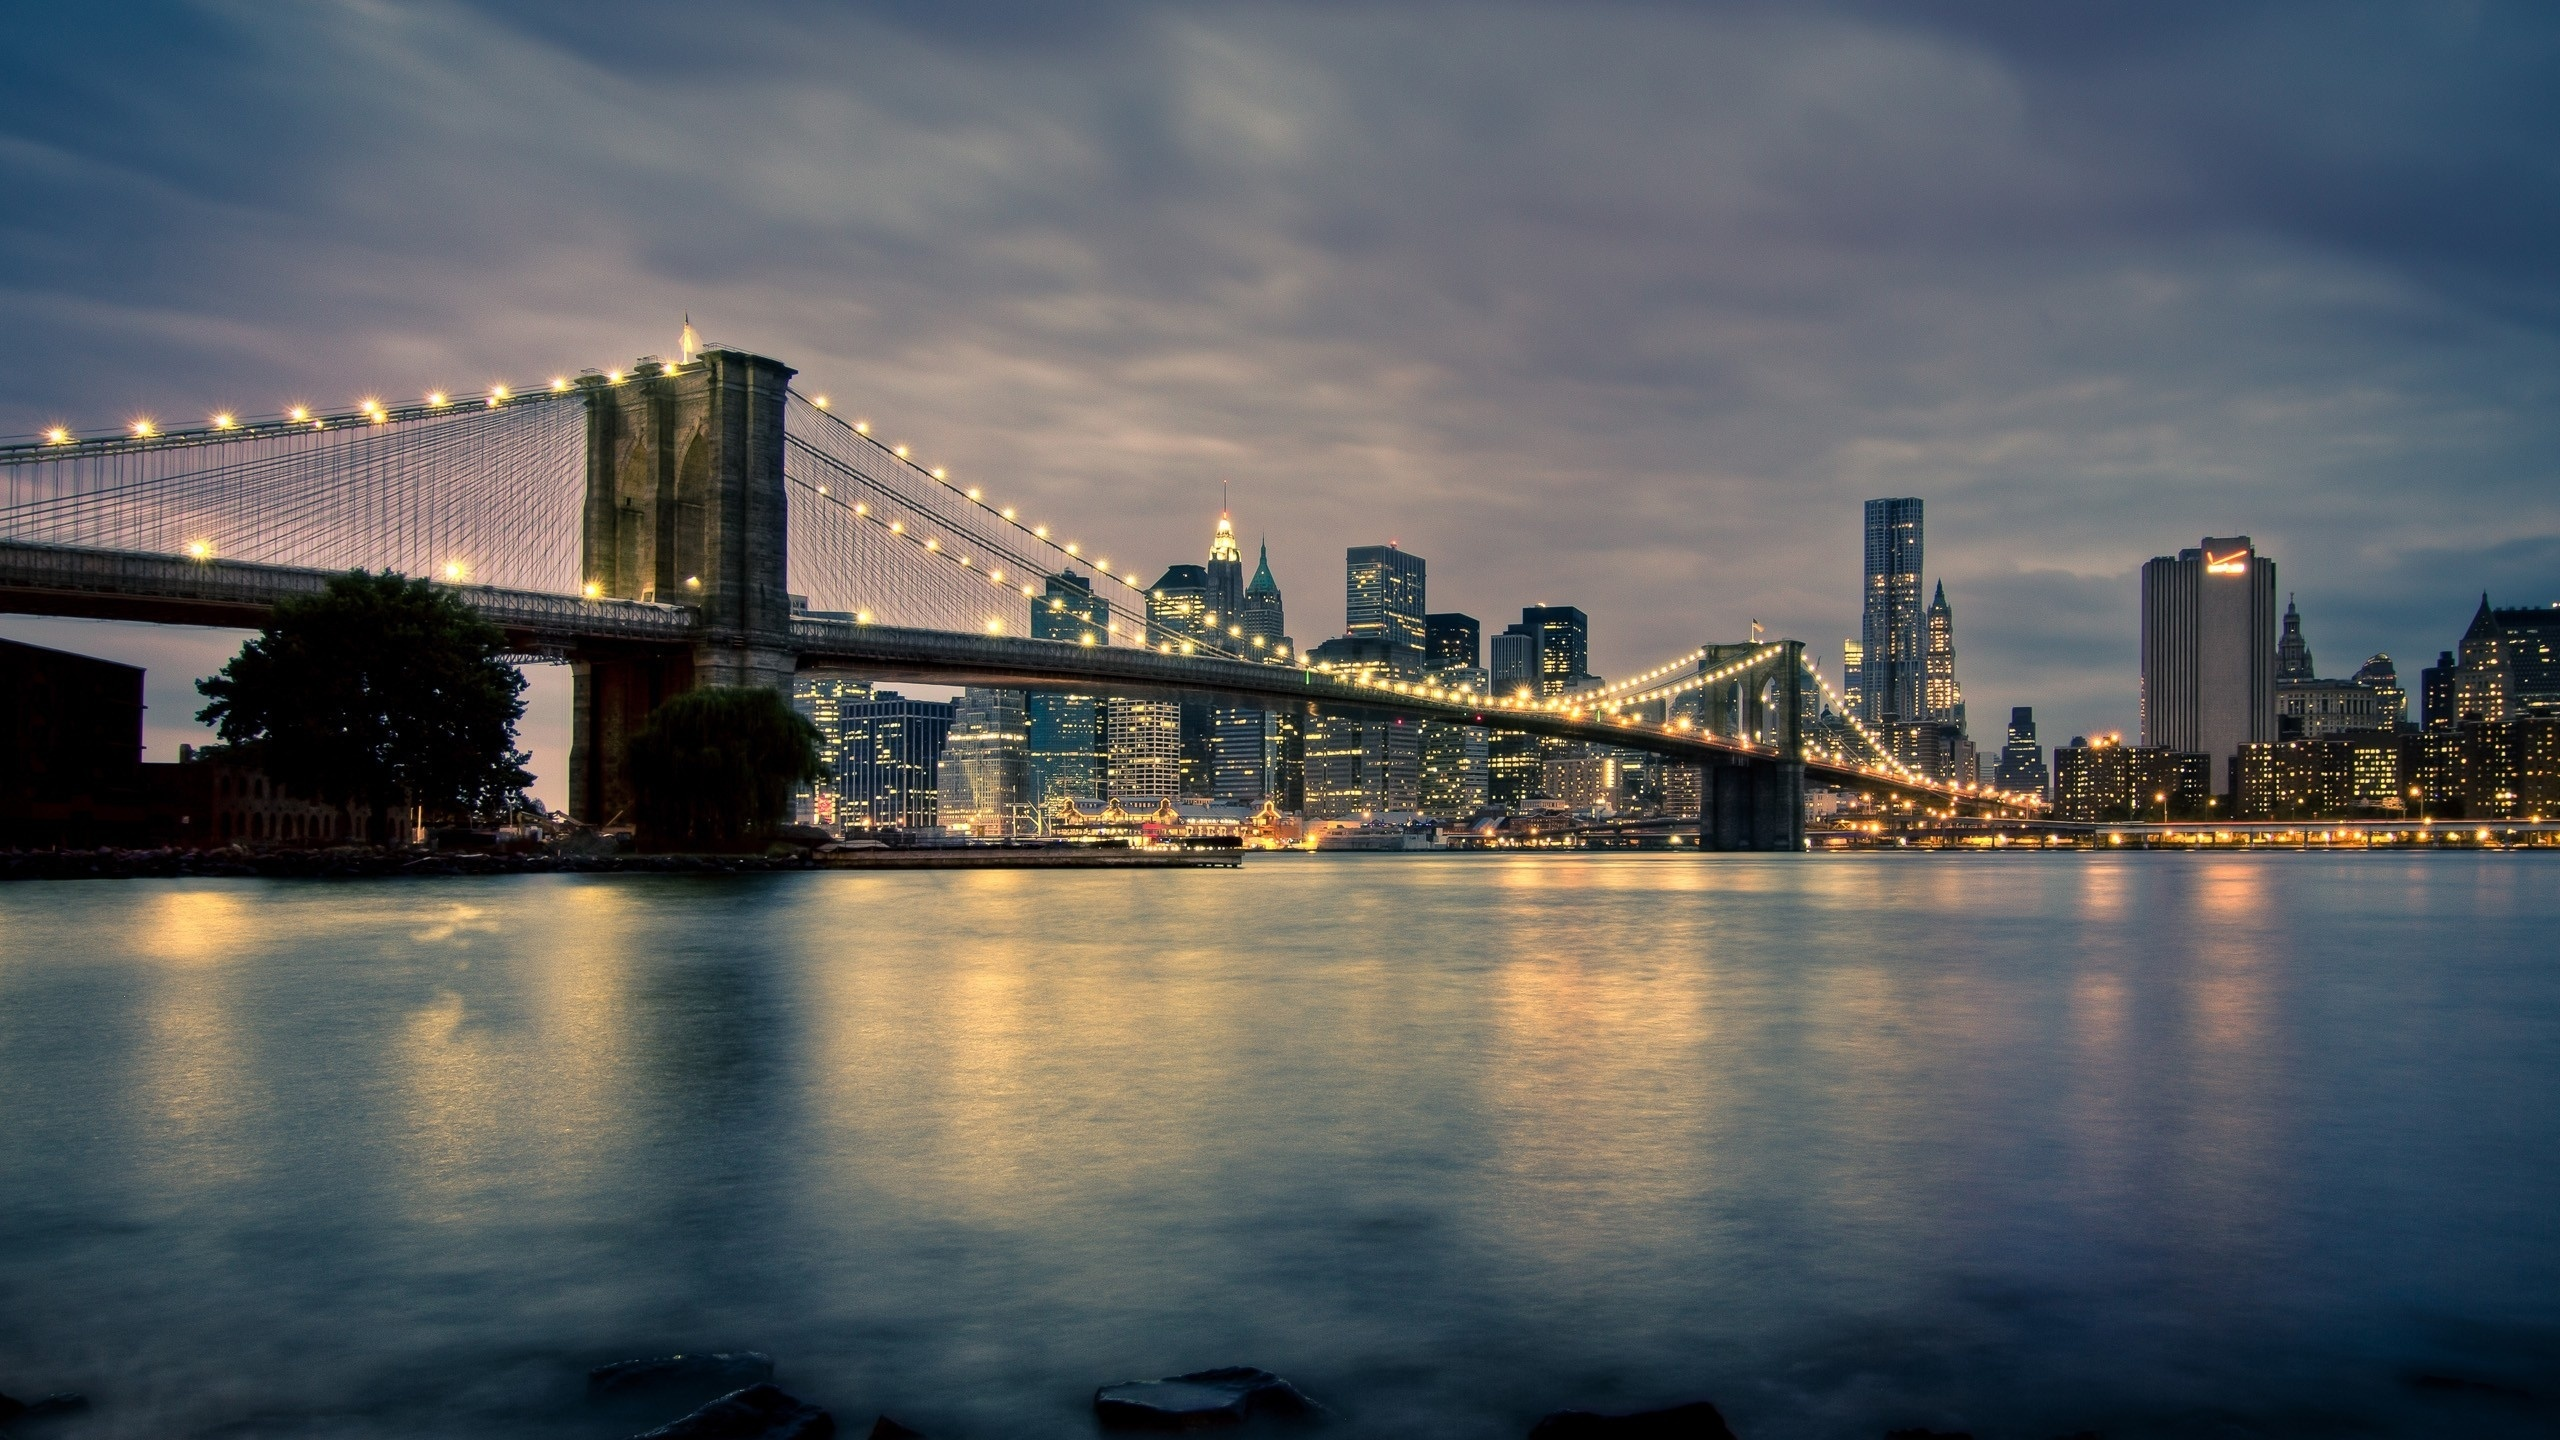 Man Made Brooklyn Bridge Wallpaper Px Free Download